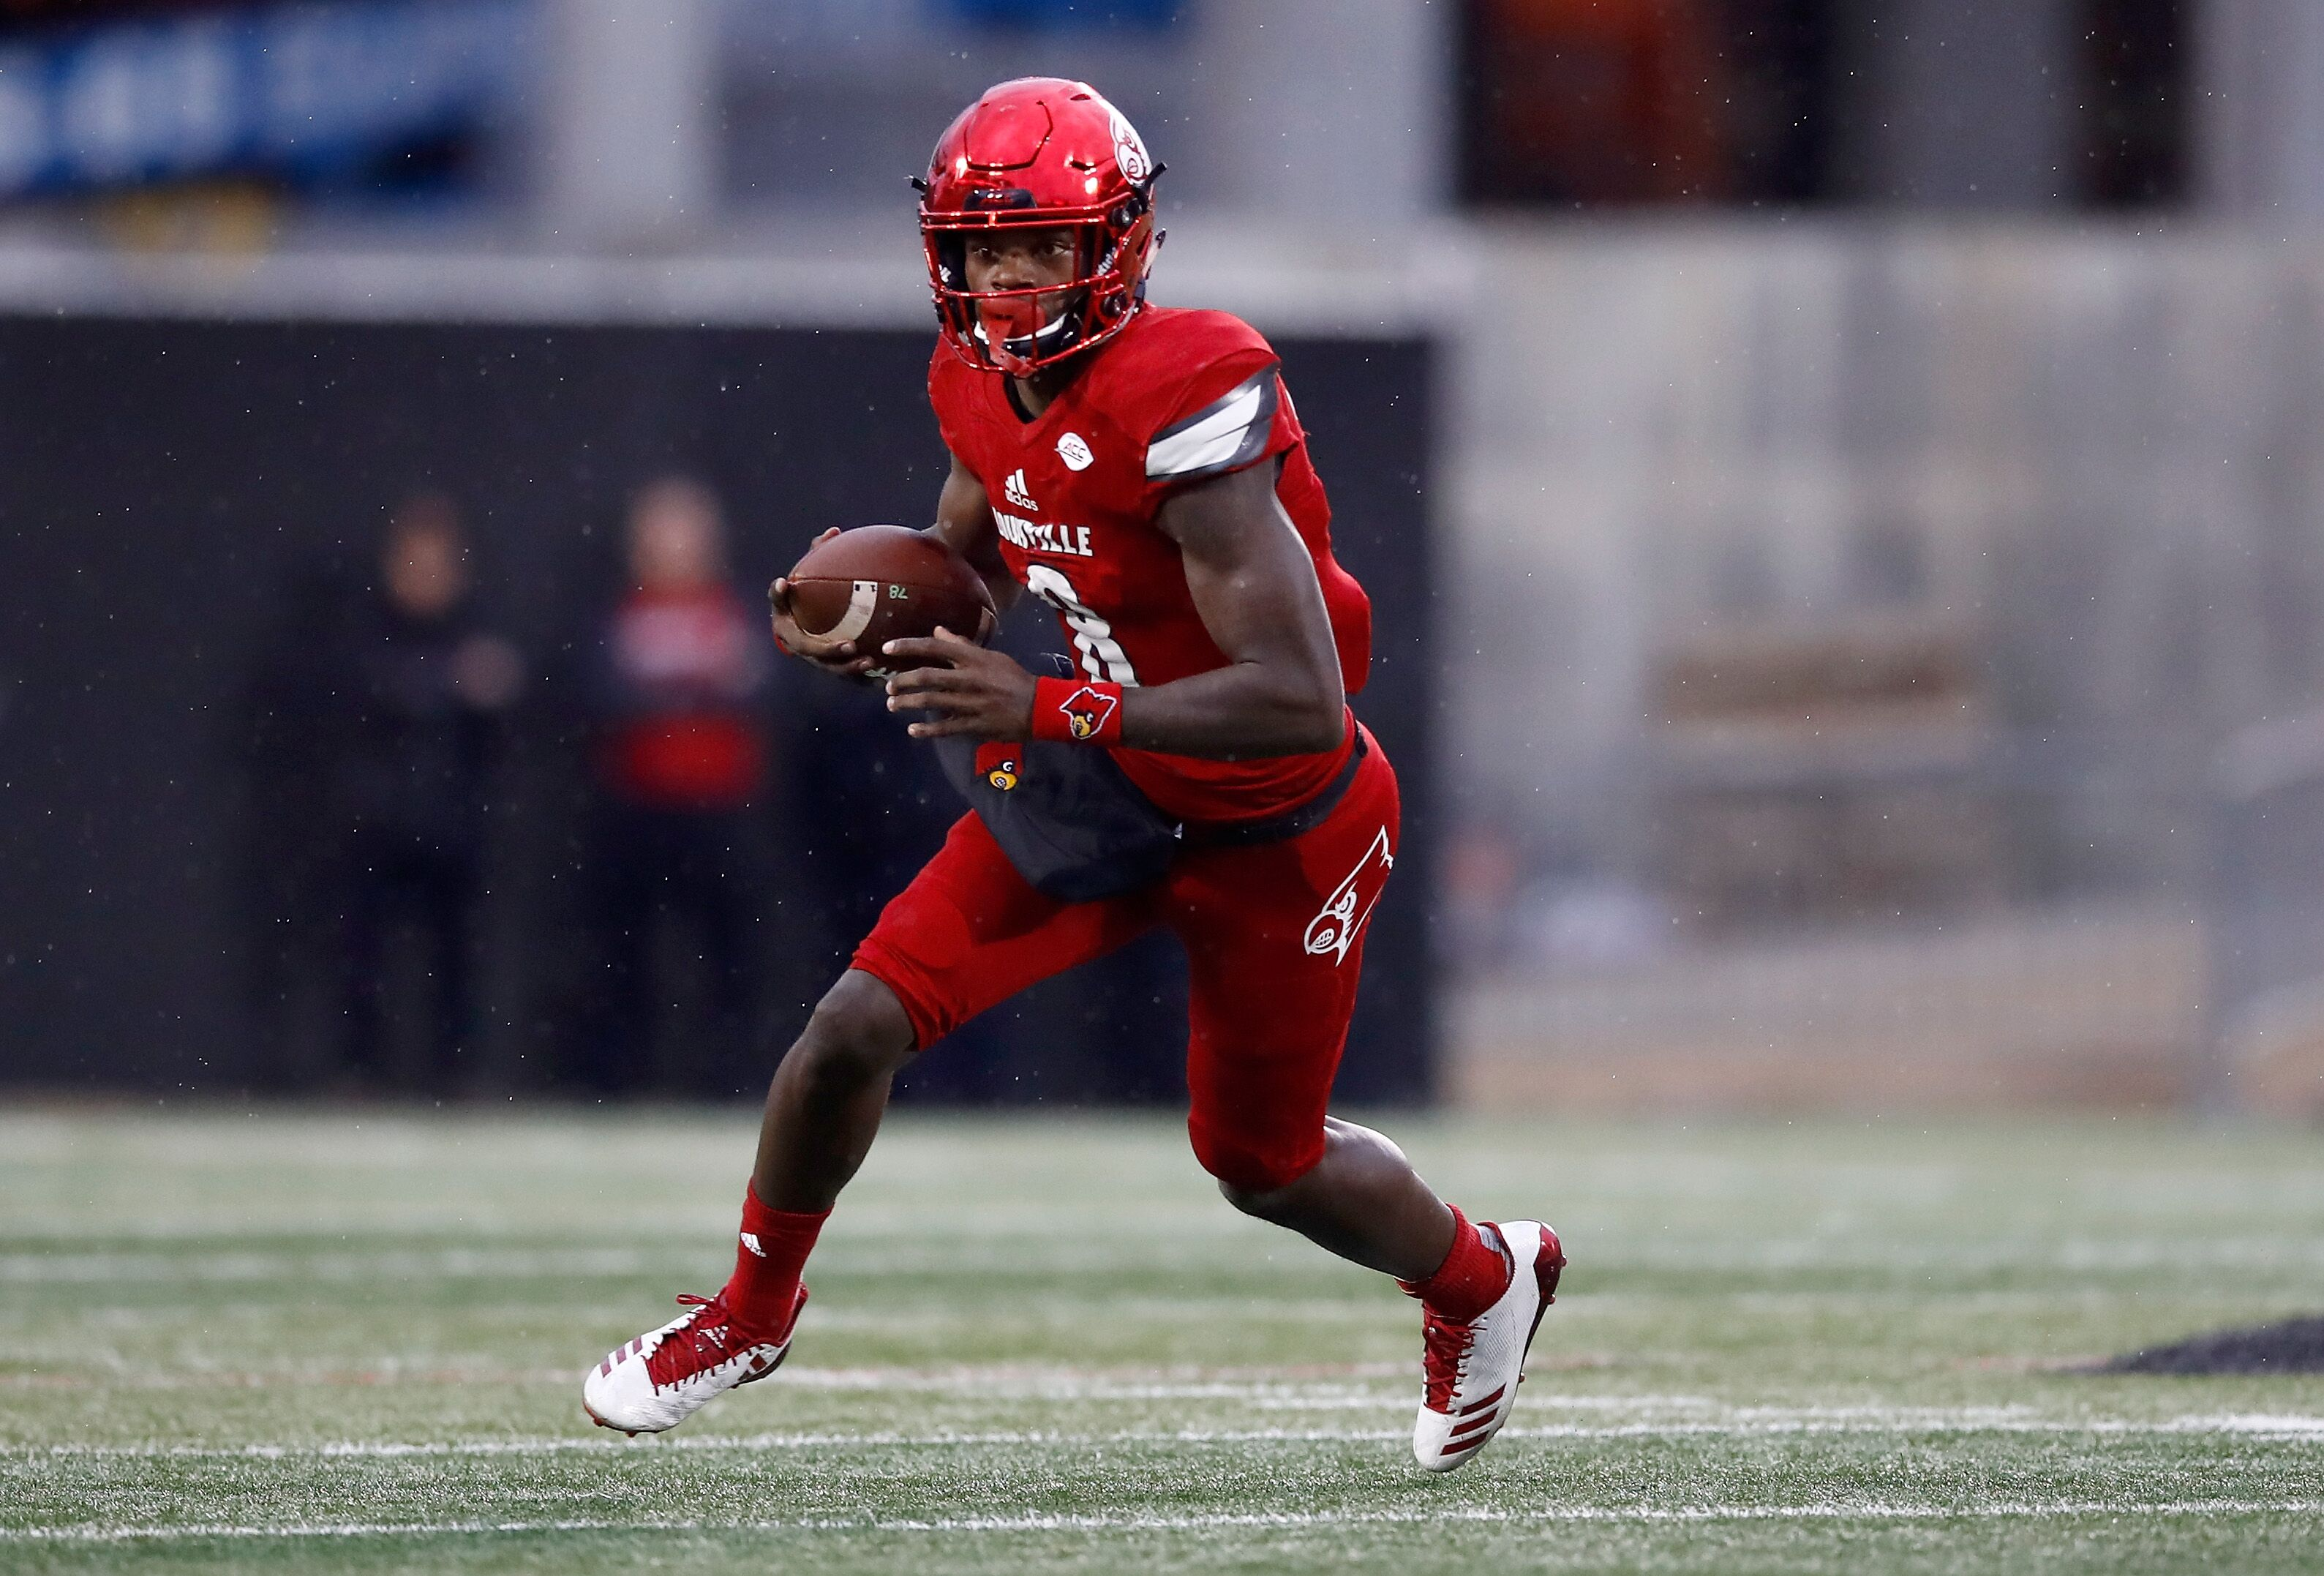 LOUISVILLE, KY - NOVEMBER 18: Lamar Jackson #8 of the Louisville Cardinals runs with the ball against the Syracuse Orange during the game at Papa John's Cardinal Stadium on November 18, 2017 in Louisville, Kentucky. (Photo by Andy Lyons/Getty Images)